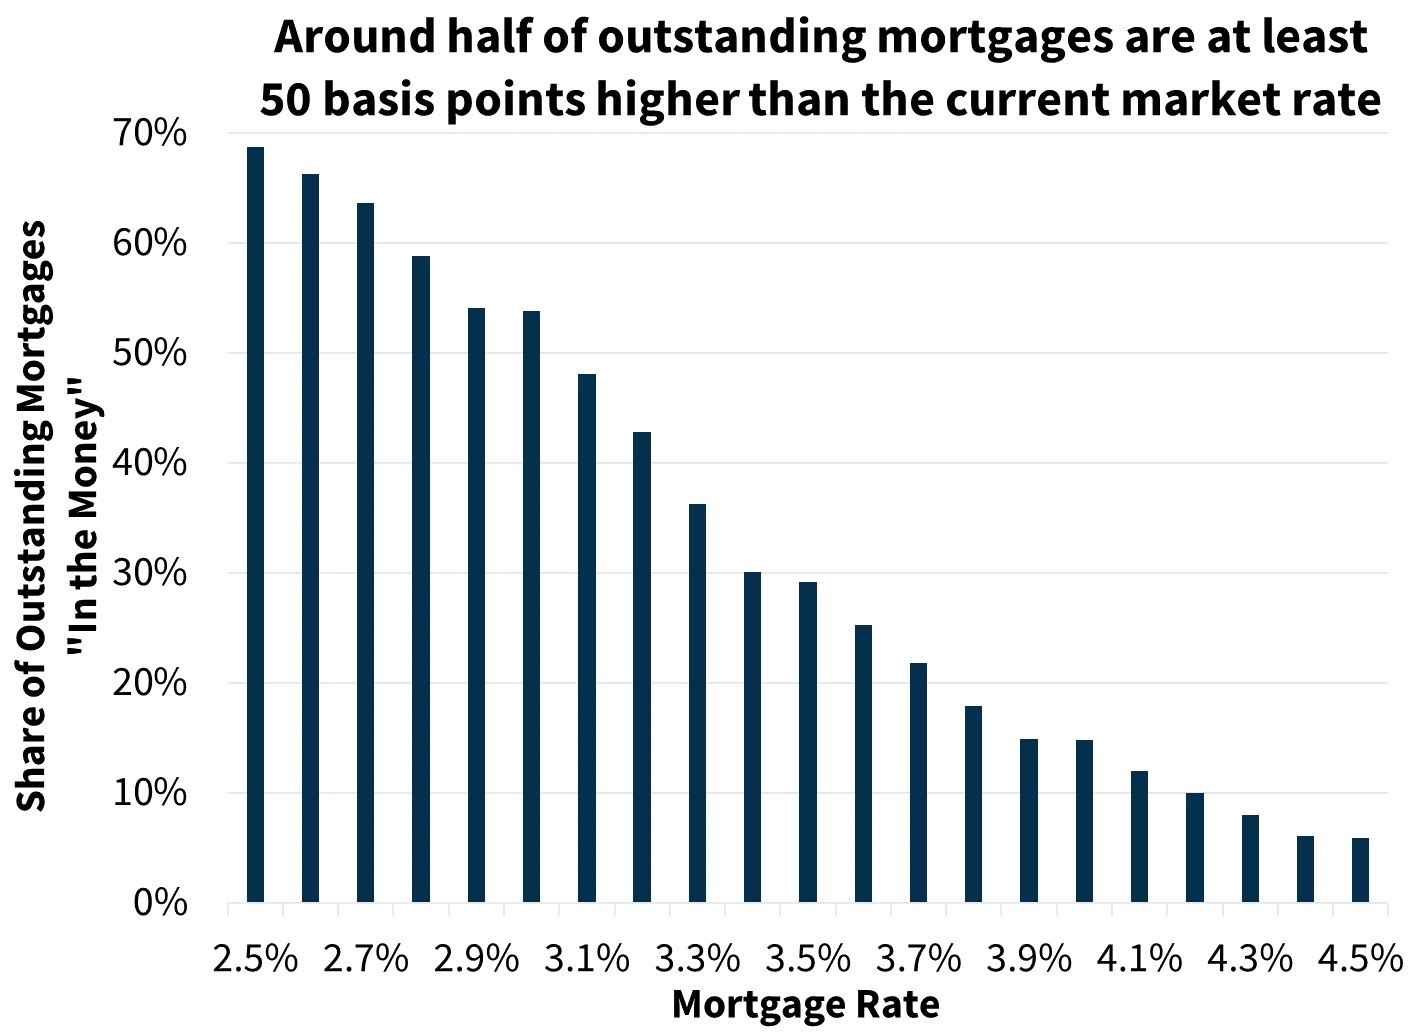 Around half of outstanding mortgages are at least 50 basis points higher than the current market rate